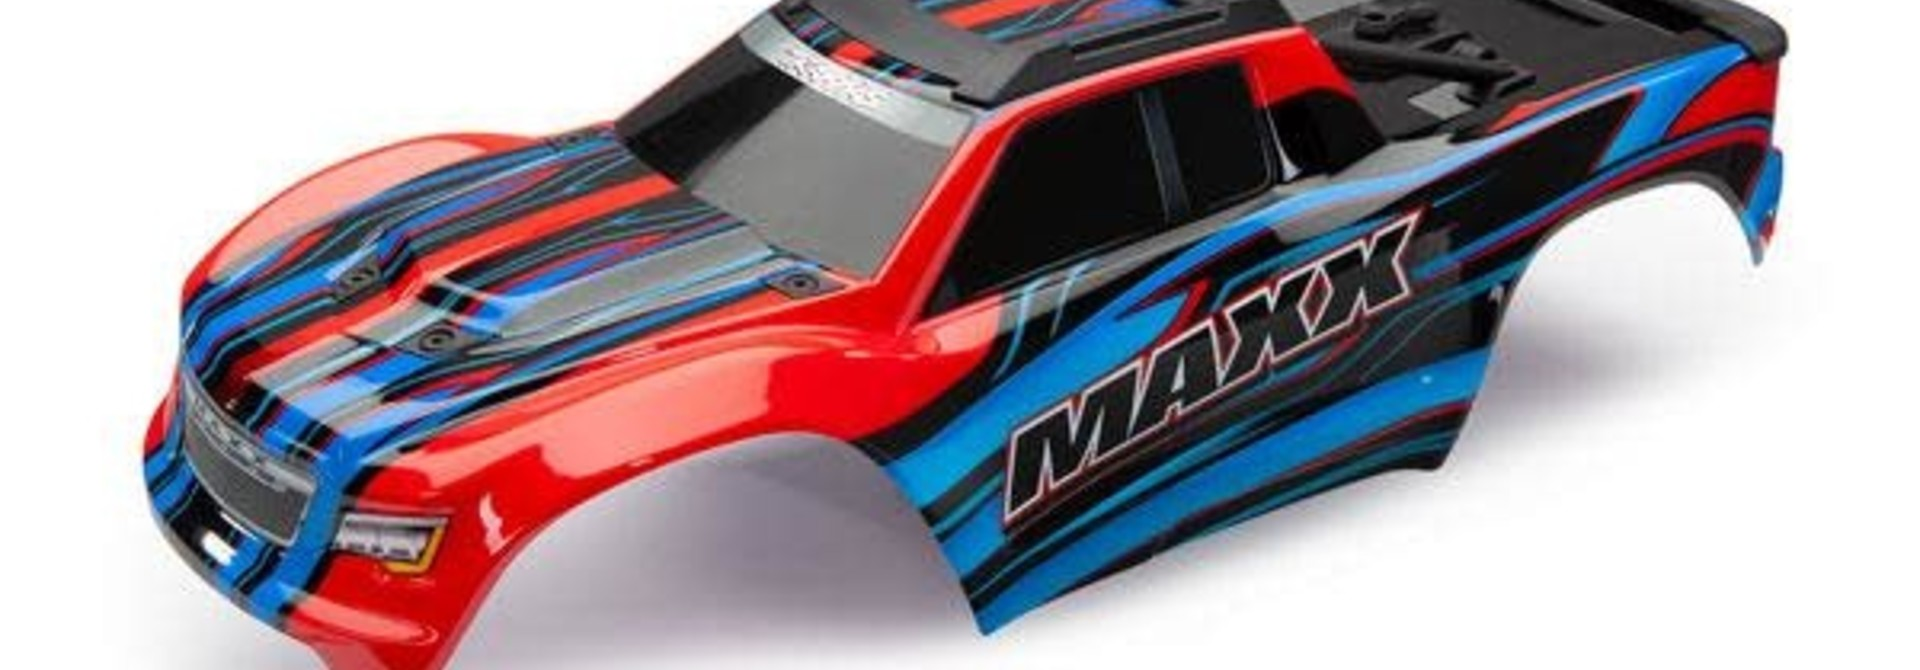 Body, Maxx, red (painted)/ decal sheetBody Maxx Red Decals